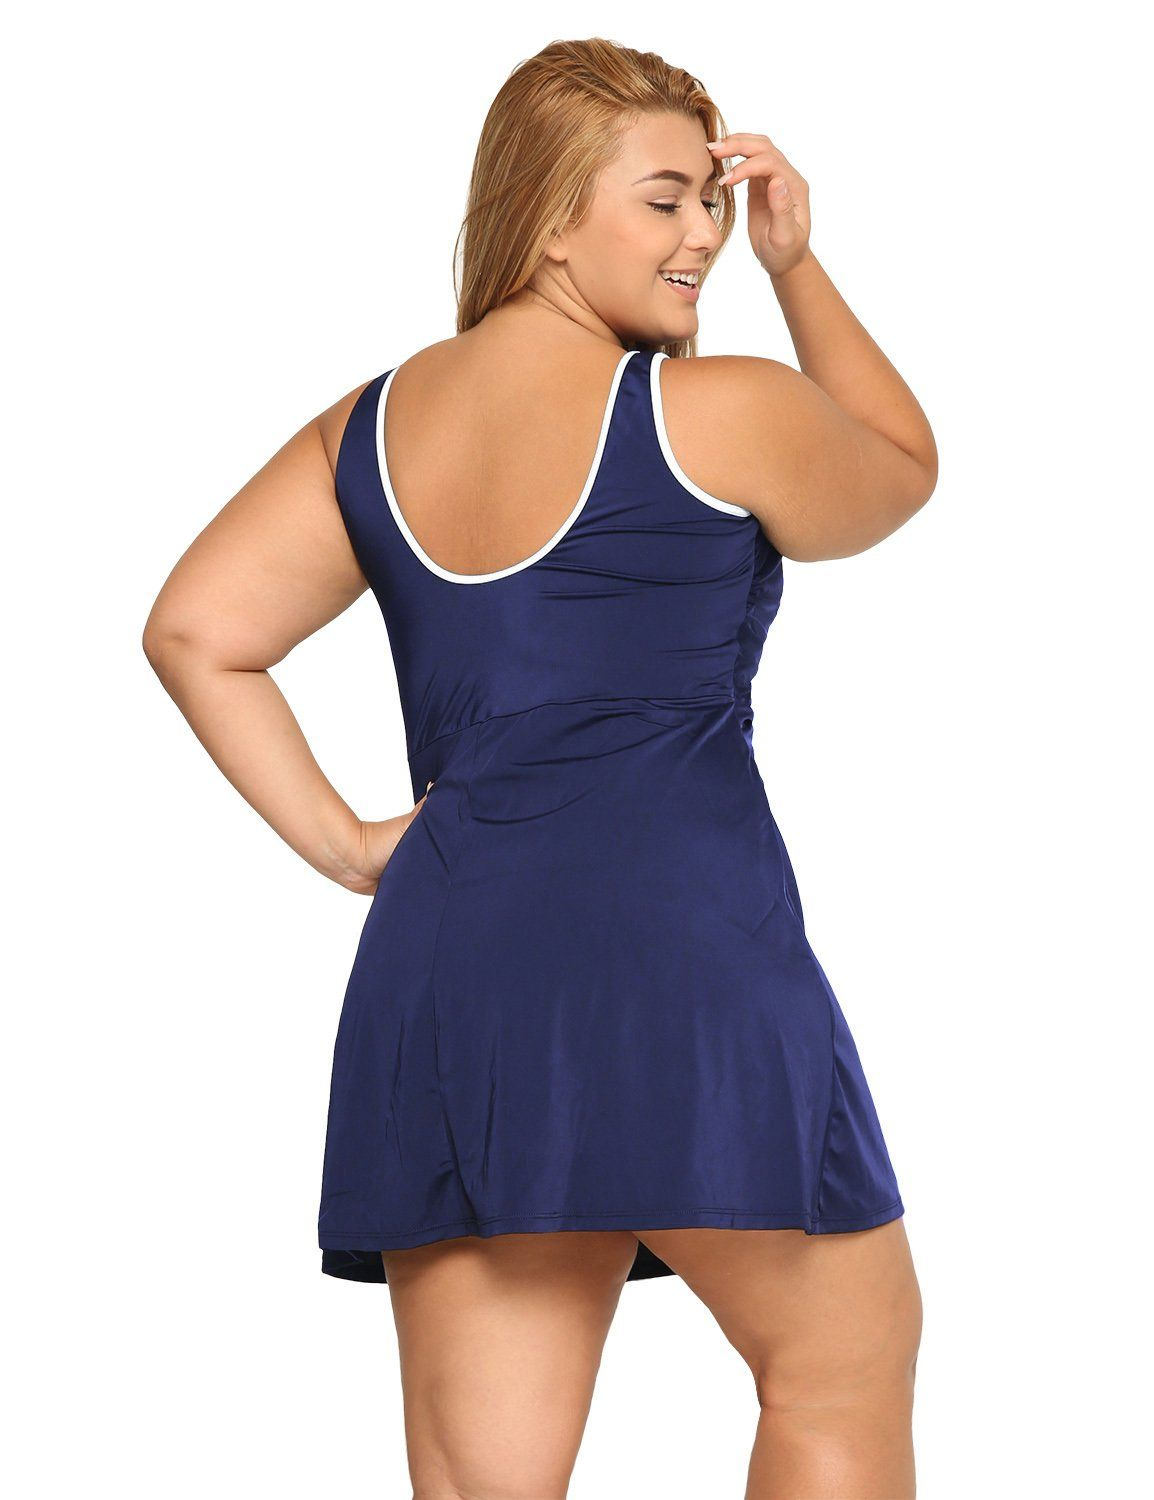 b5fb5e1c2b Delimira Womens One Piece Zip Front Skirted Bathing Suits Swimdress Swimsuit  Navy US 46 -- To view further for this item, visit the image link.